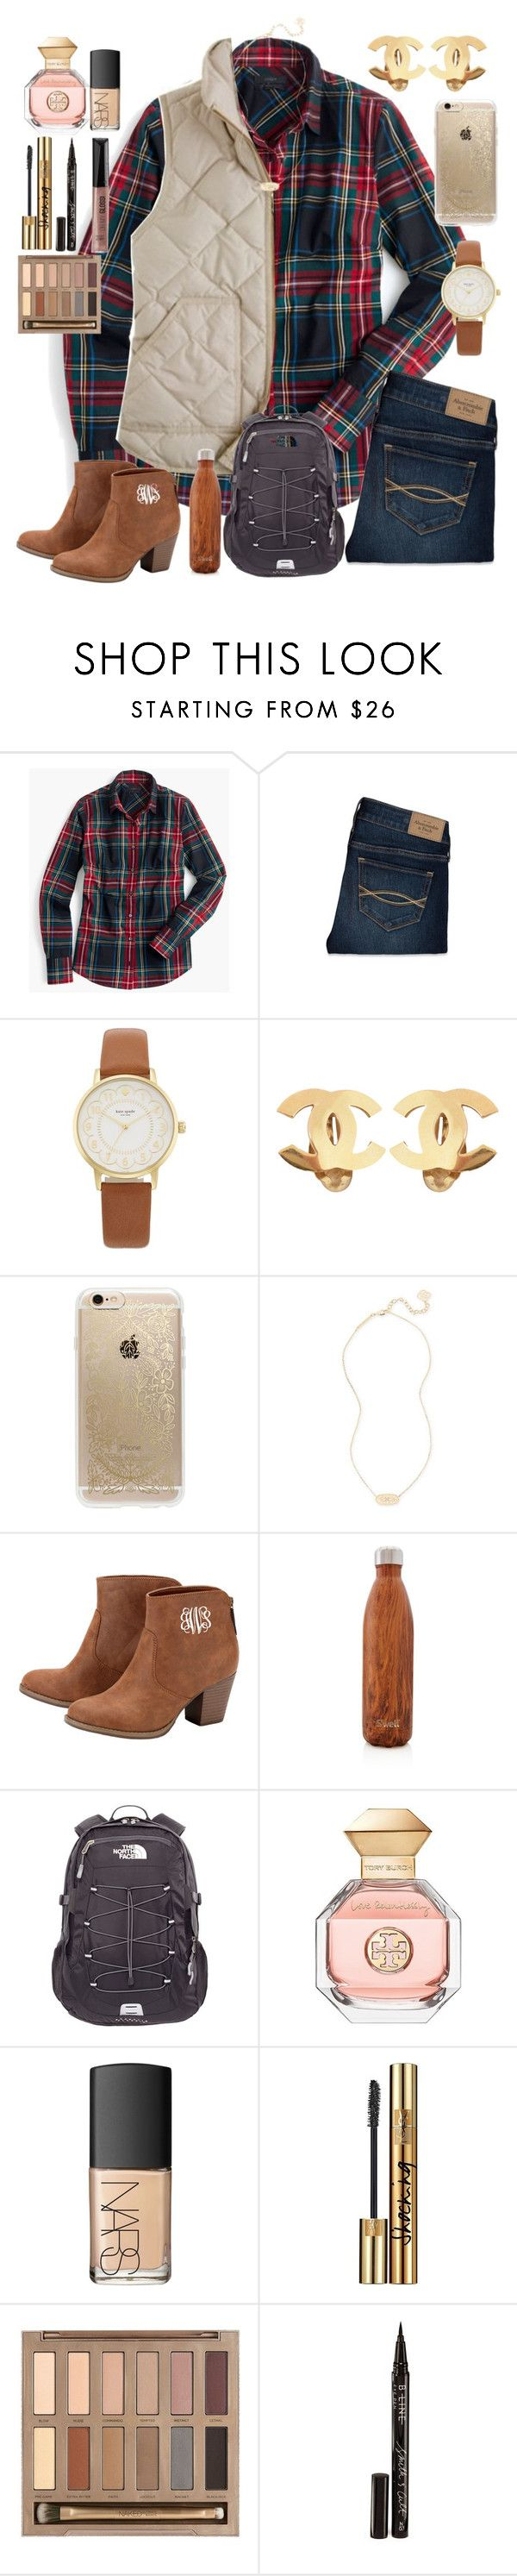 """""""1/24/17"""" by ctrygrl1999 ❤ liked on Polyvore featuring J.Crew, Abercrombie & Fitch, Kate Spade, Chanel, Rifle Paper Co, Kendra Scott, S'well, The North Face, Tory Burch and NARS Cosmetics"""